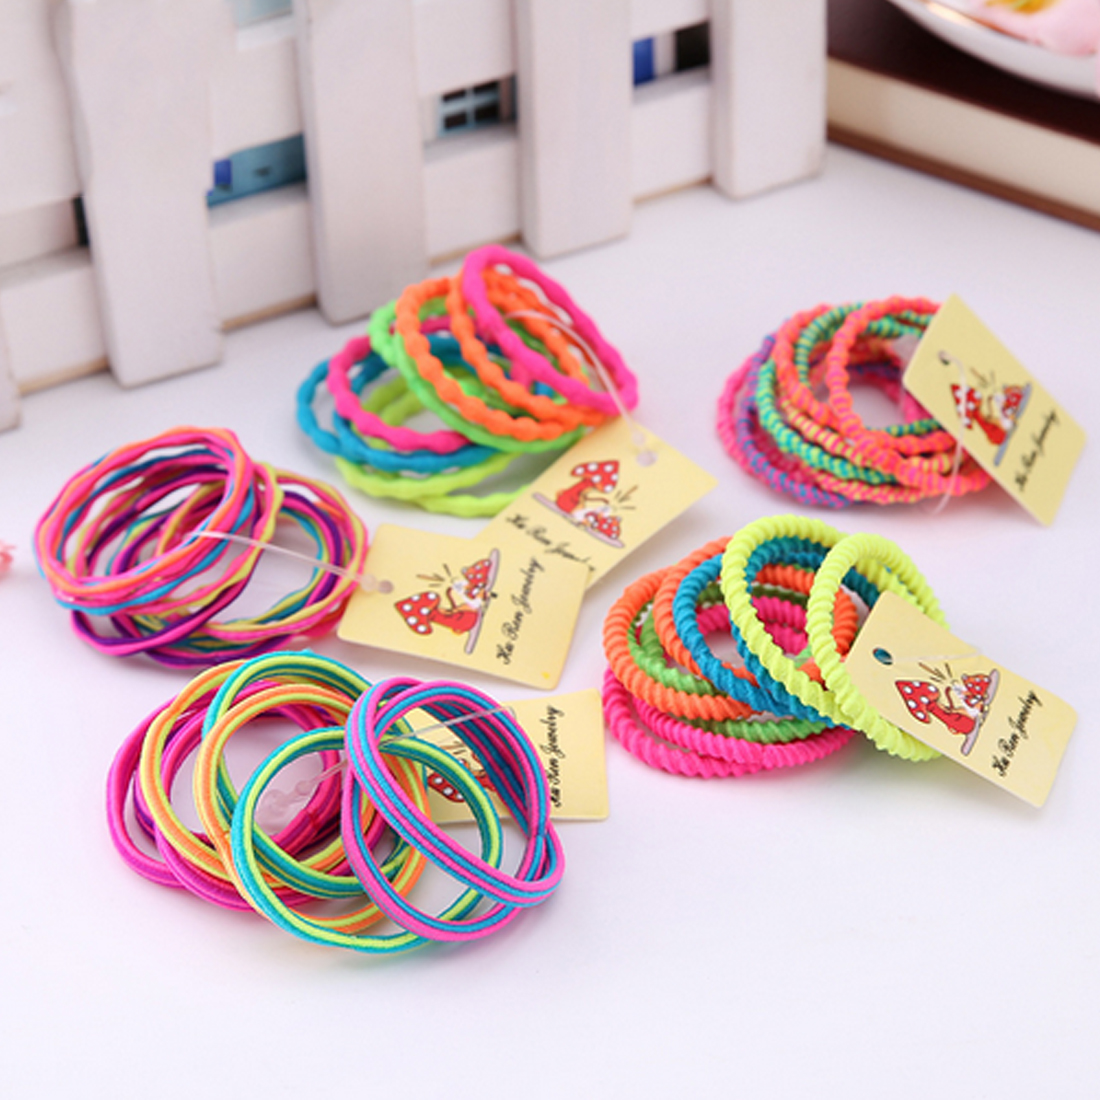 10PCS/Lot Girls Colorful Elastic Hair Band Lovely Kids Child Hair Ropes Ponytail Holder Scrunchie Gum Headwear Hair Accessories 20pcs lot new colorful mink hair black elastic hair bands girls tie ponytail holder hair ropes kids headbands hair accessories